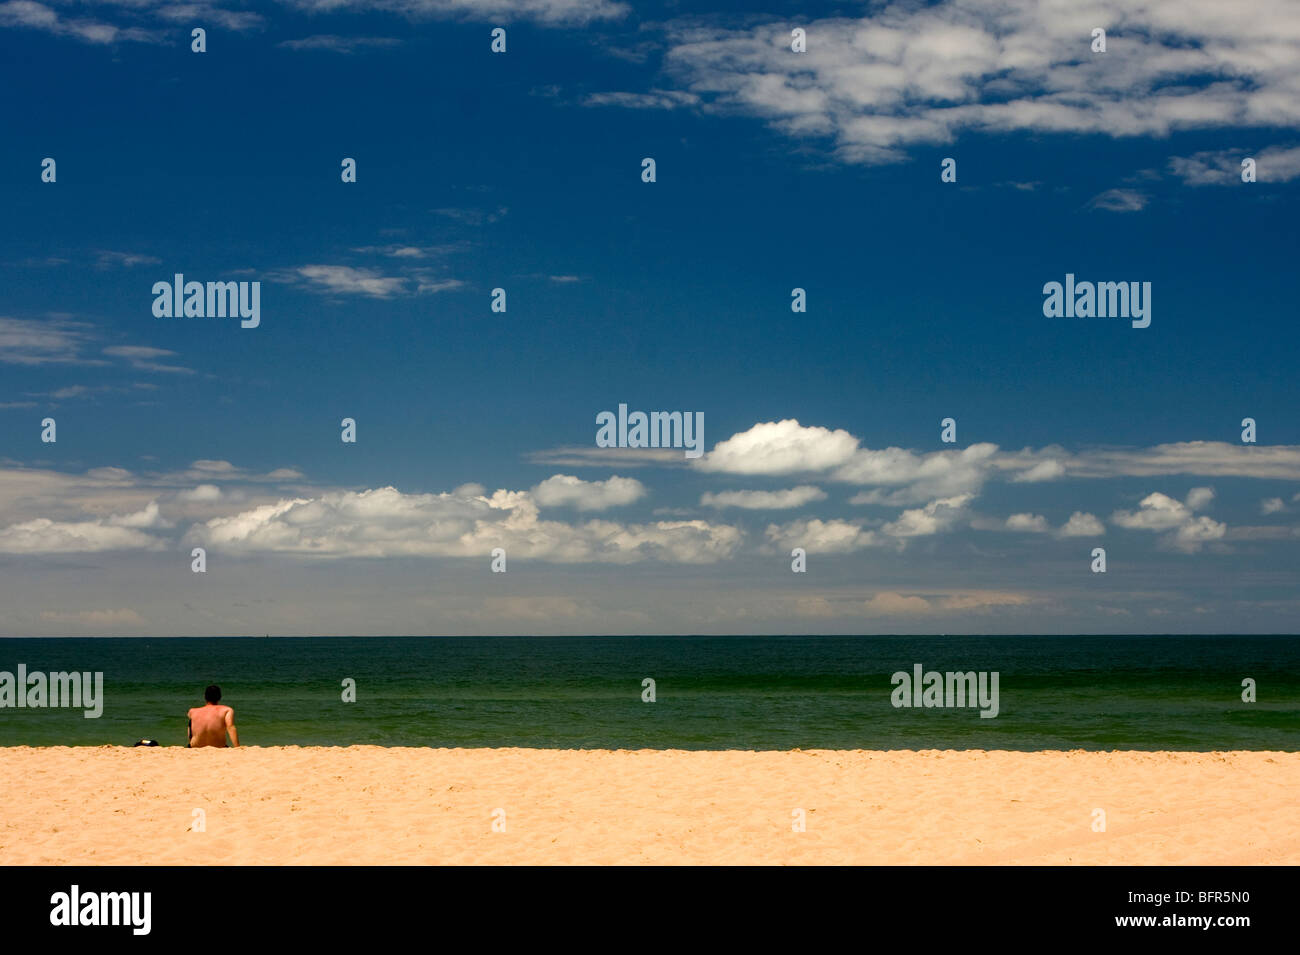 Lone bather looking out to the horizon on Pirate' Beach - Stock Image